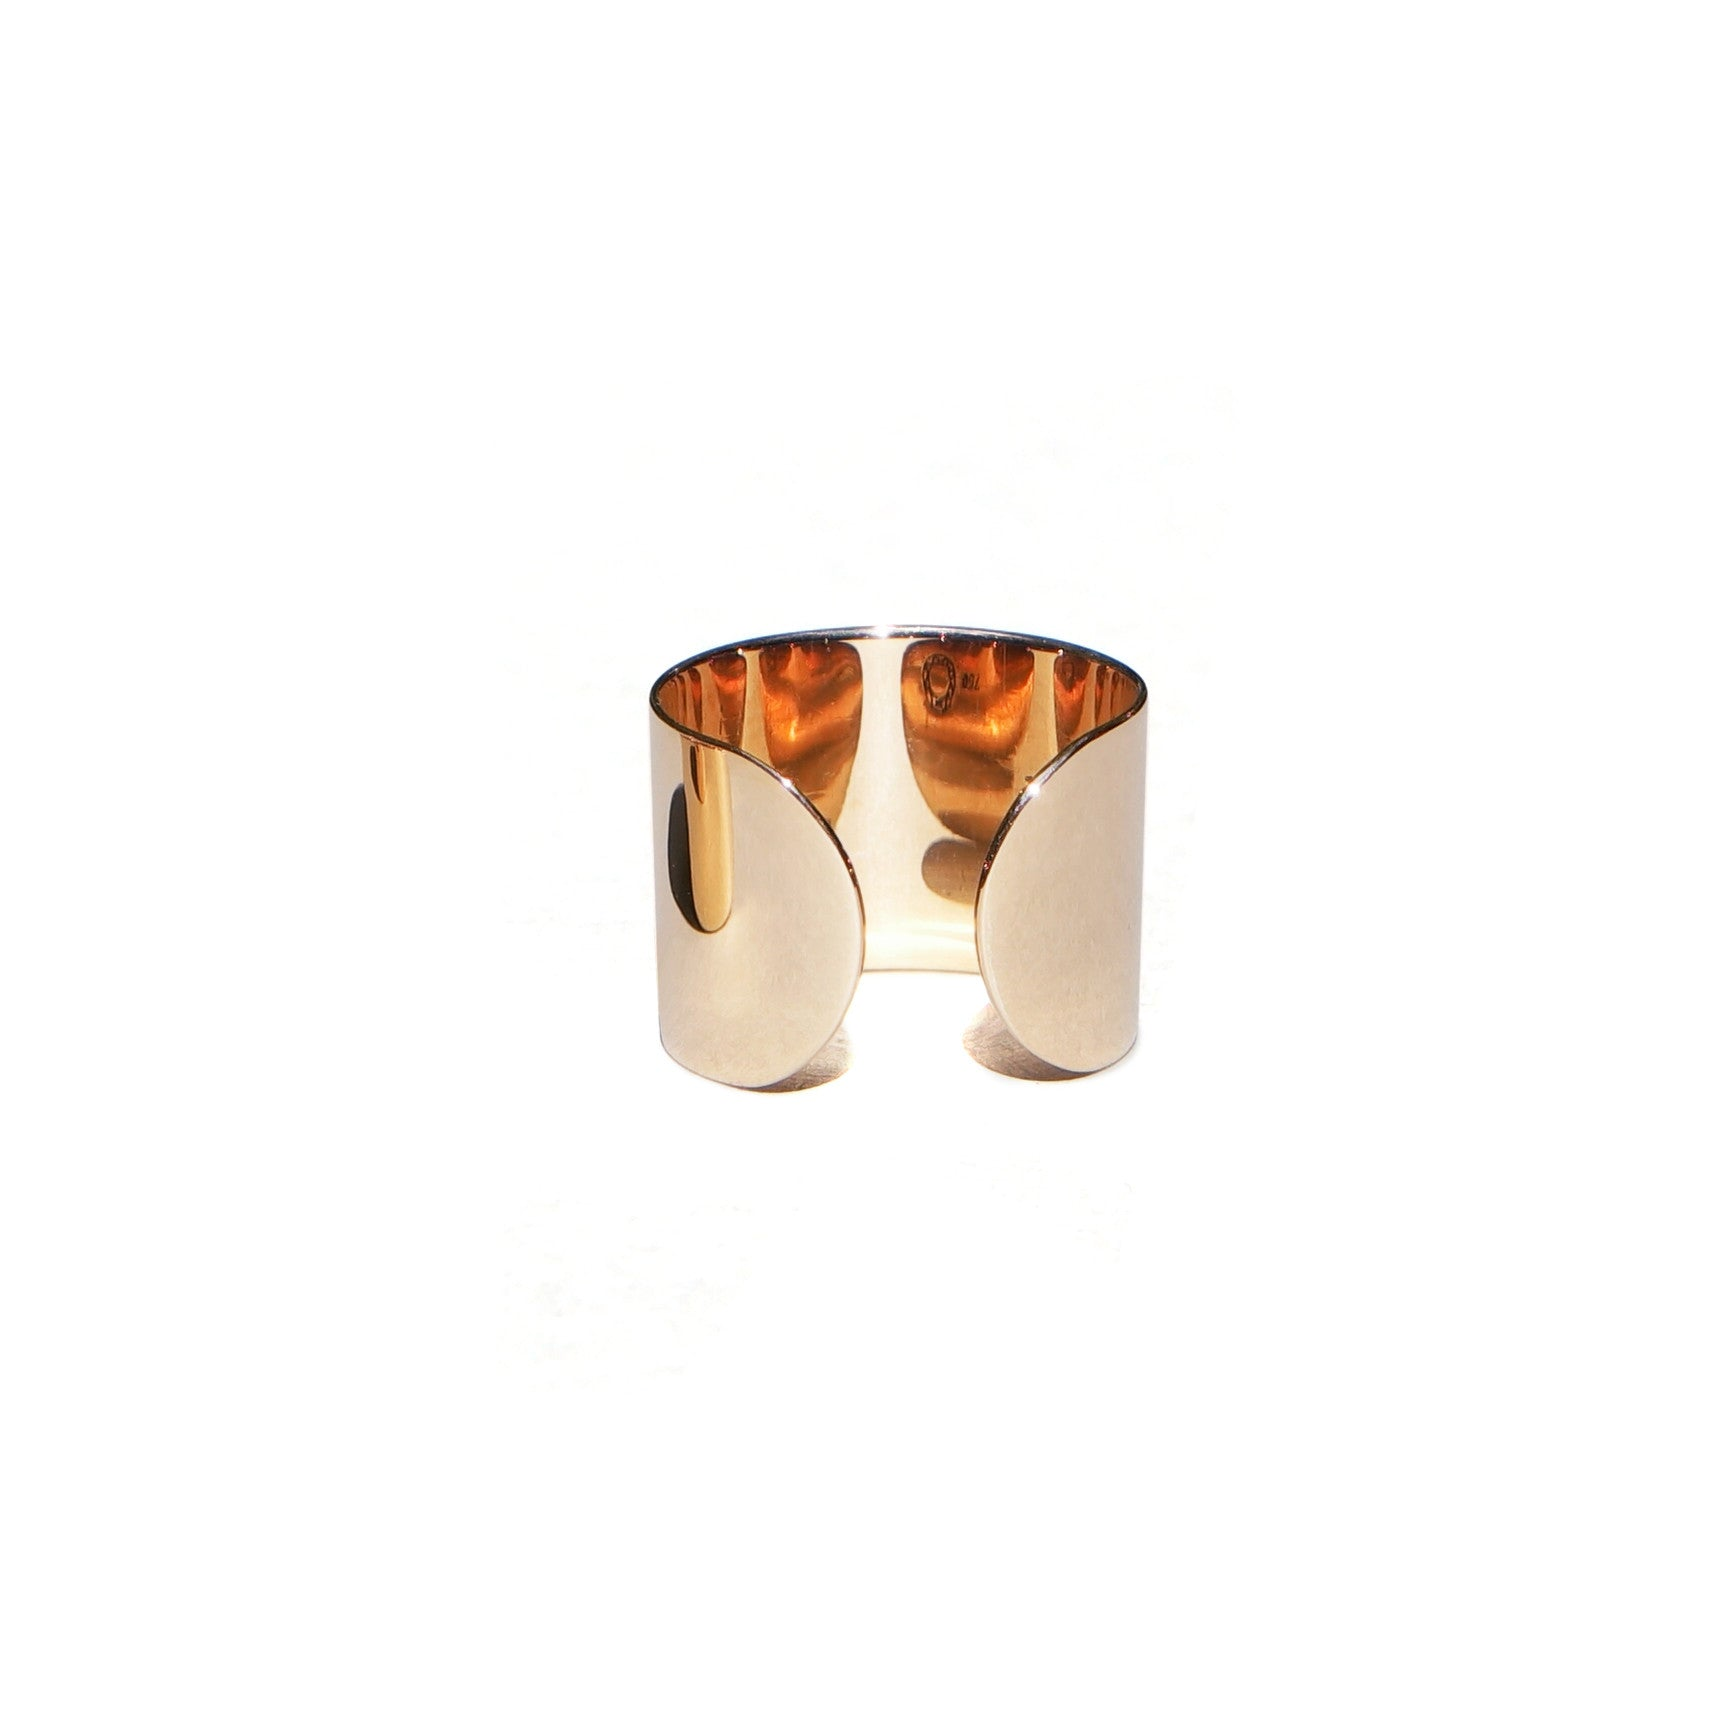 SASKIA DIEZ - GOLD PIPE RING